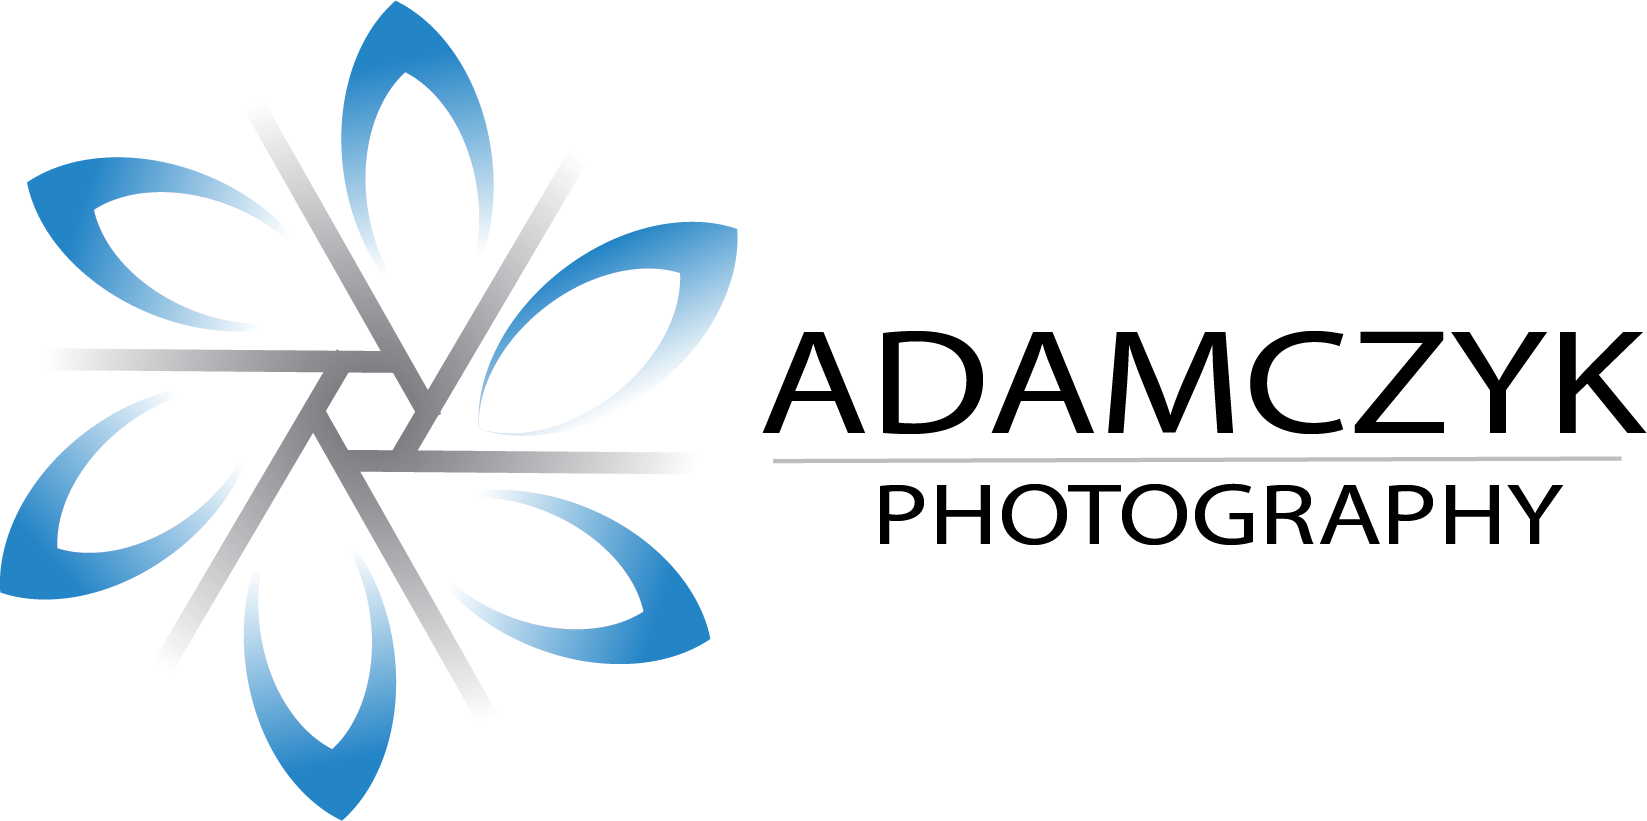 Adamczyk Photography